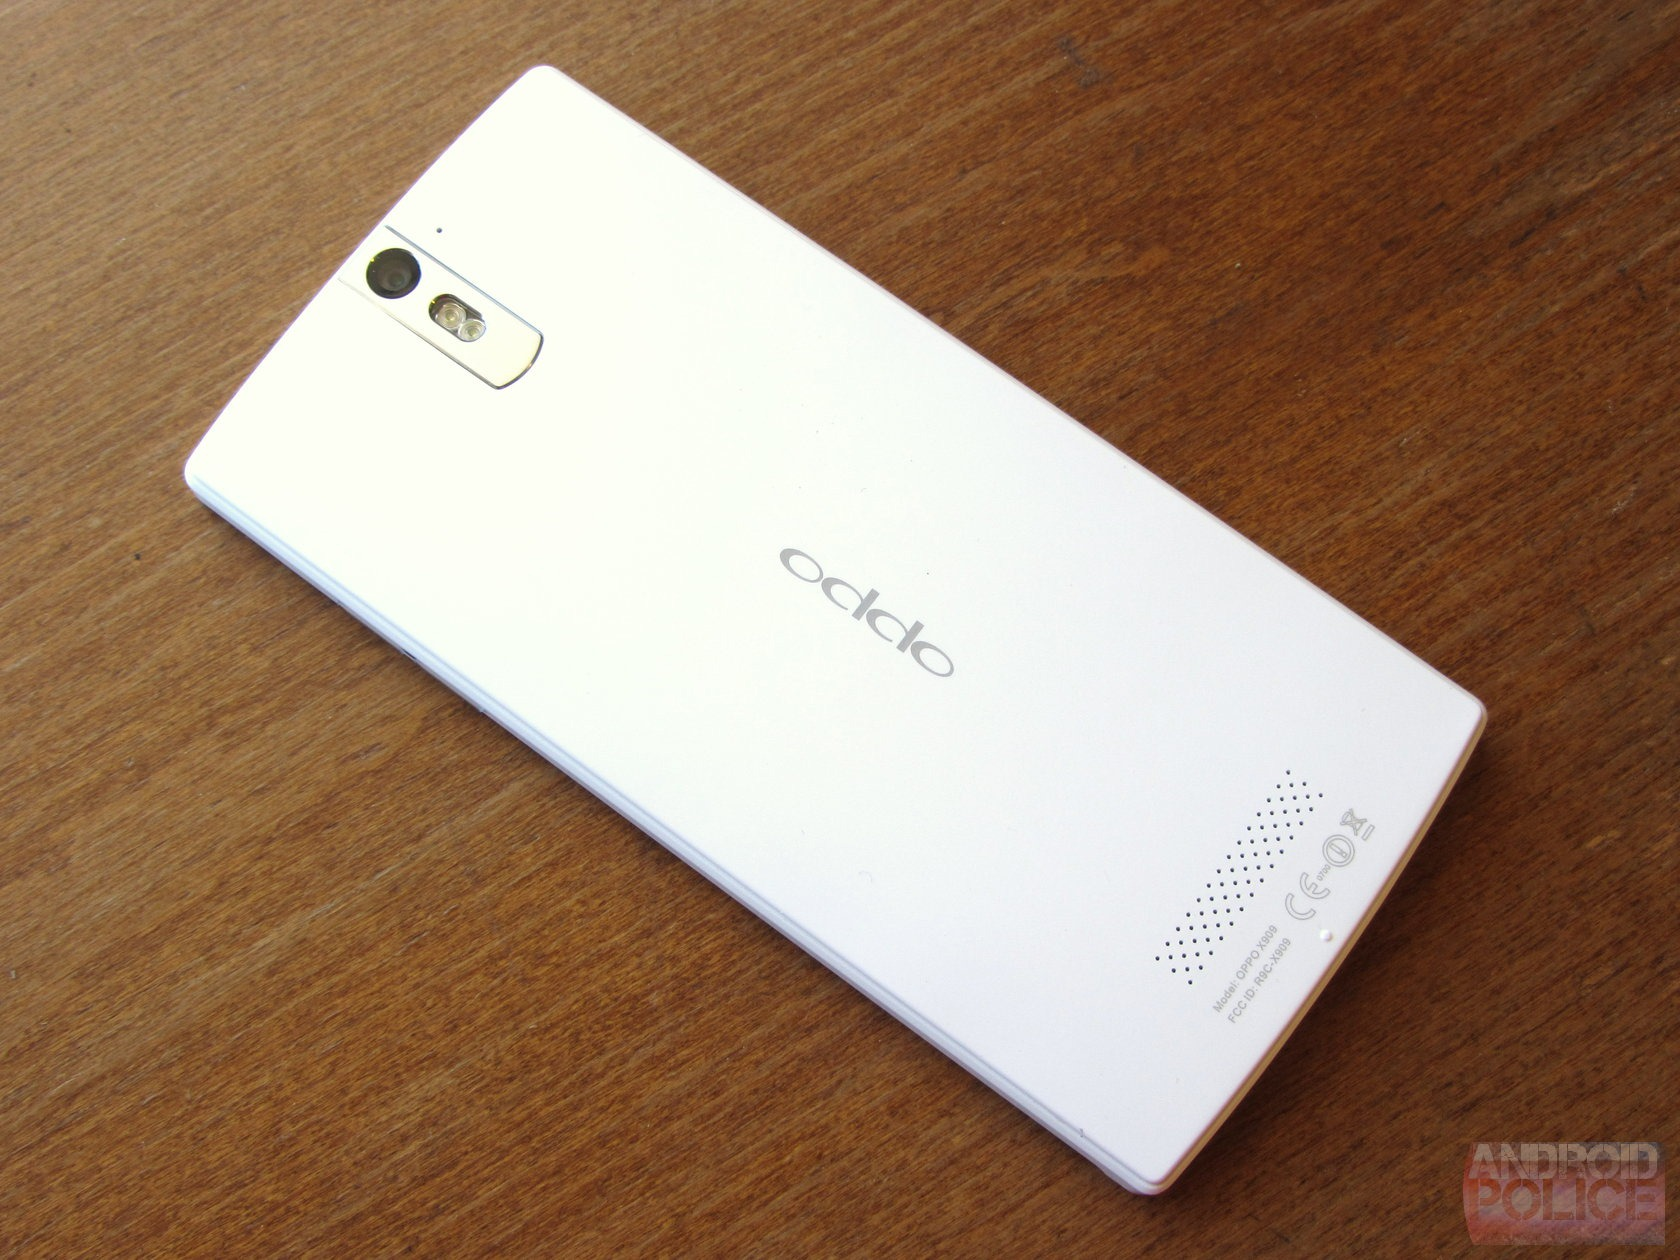 Oppo Find 5 Review: Not Perfect, But You Should Probably Pay